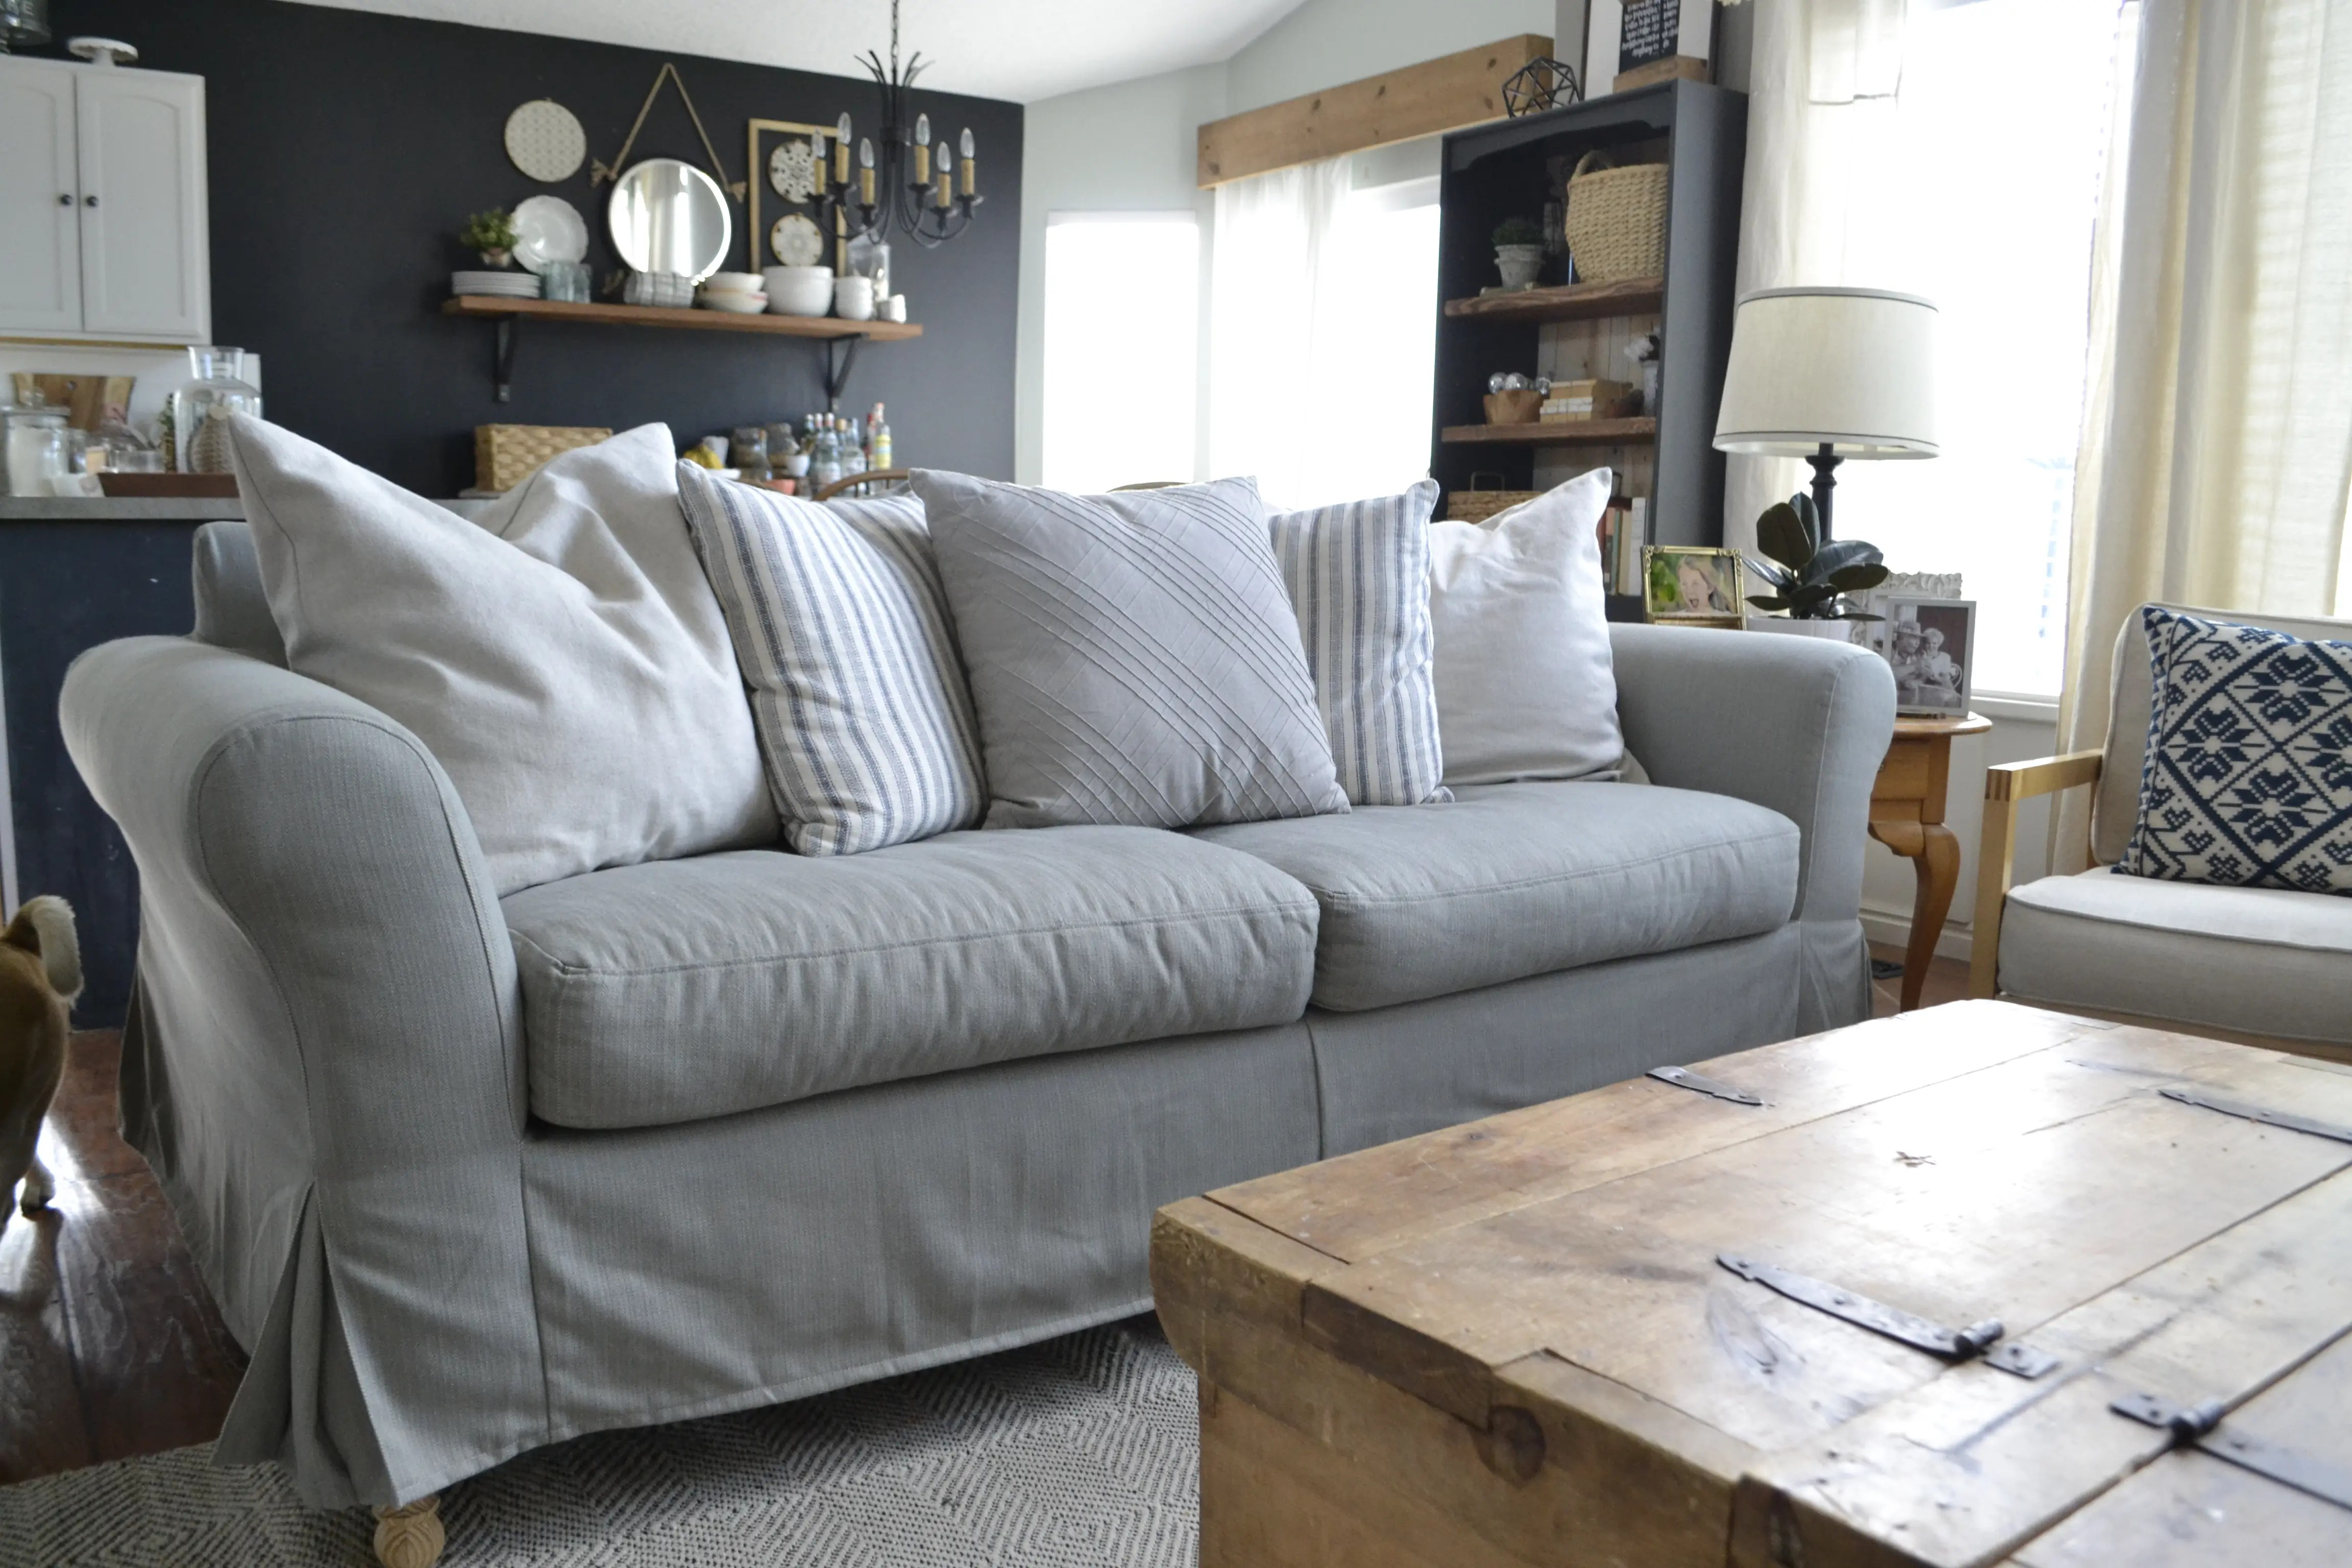 Freedom Furniture Lounges Custom Slipcovers And Couch Cover For Any Sofa Online